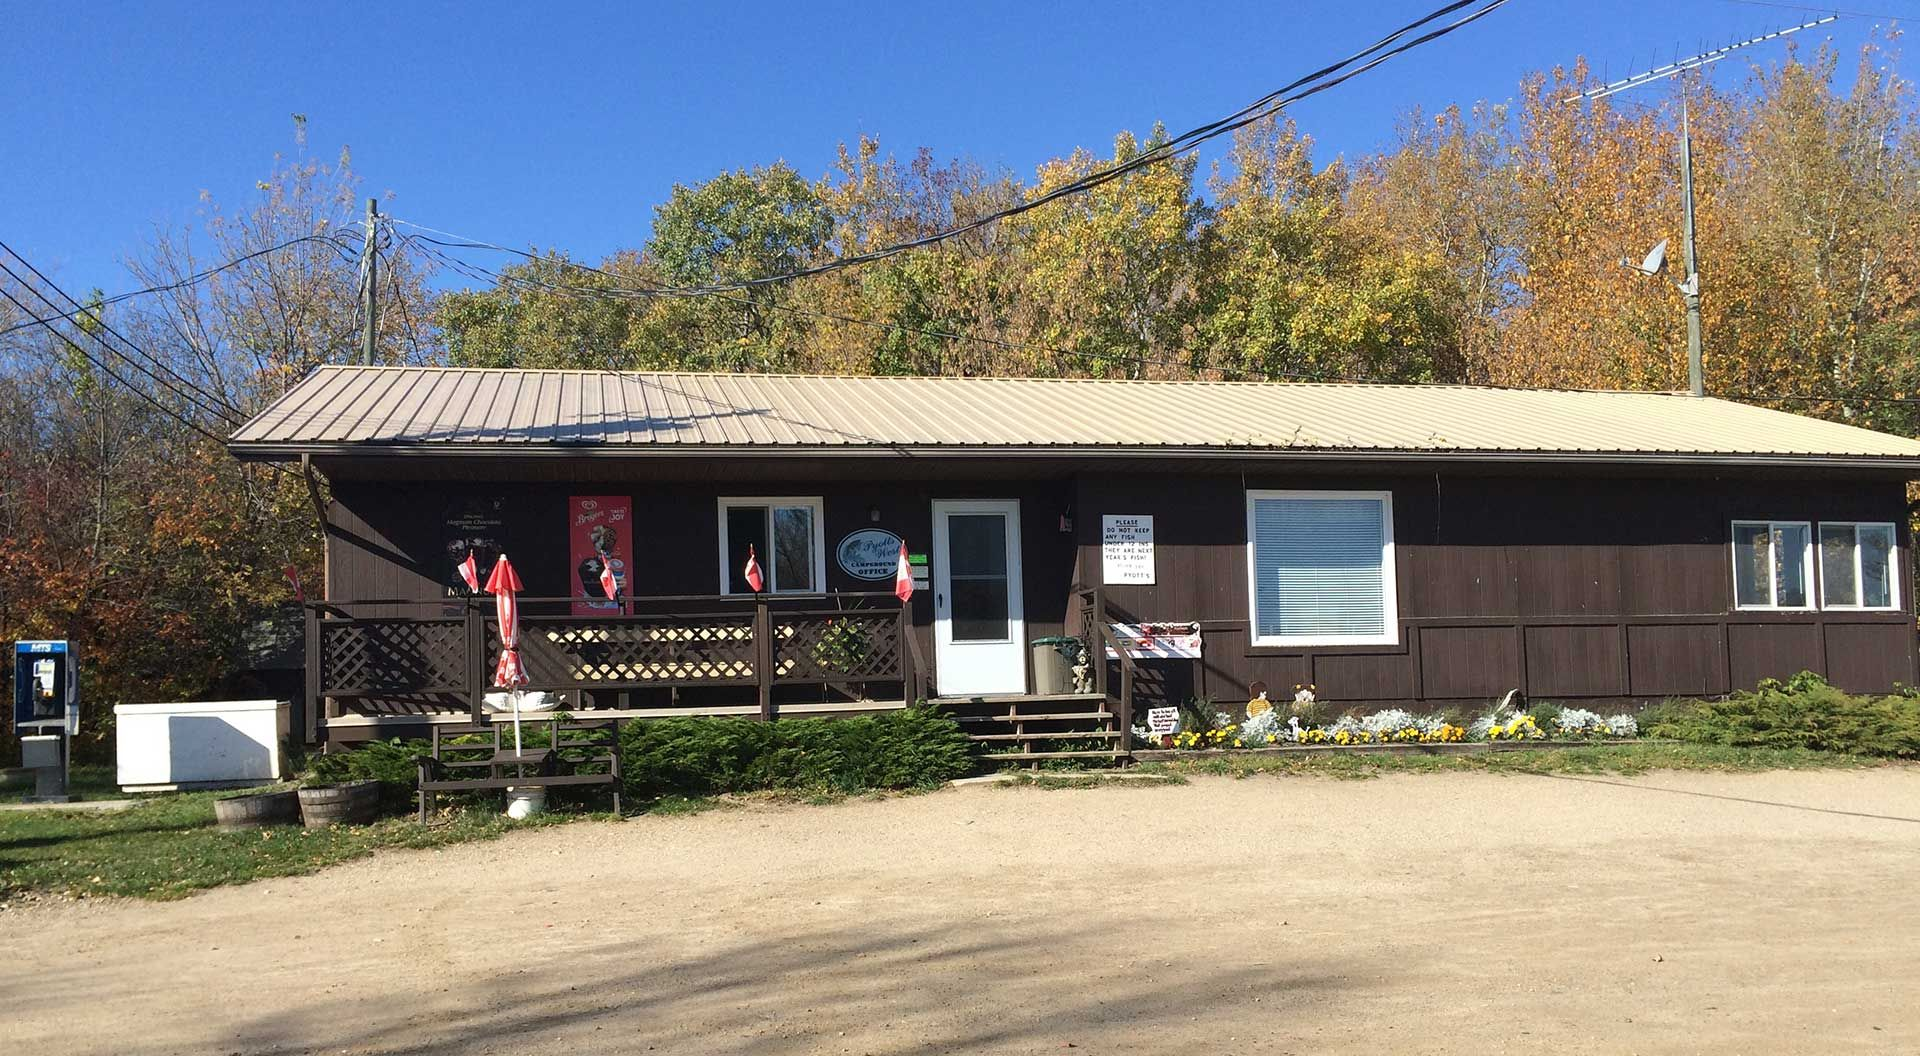 Pyotts West Campground - Your Manitoba camping & fishing destination